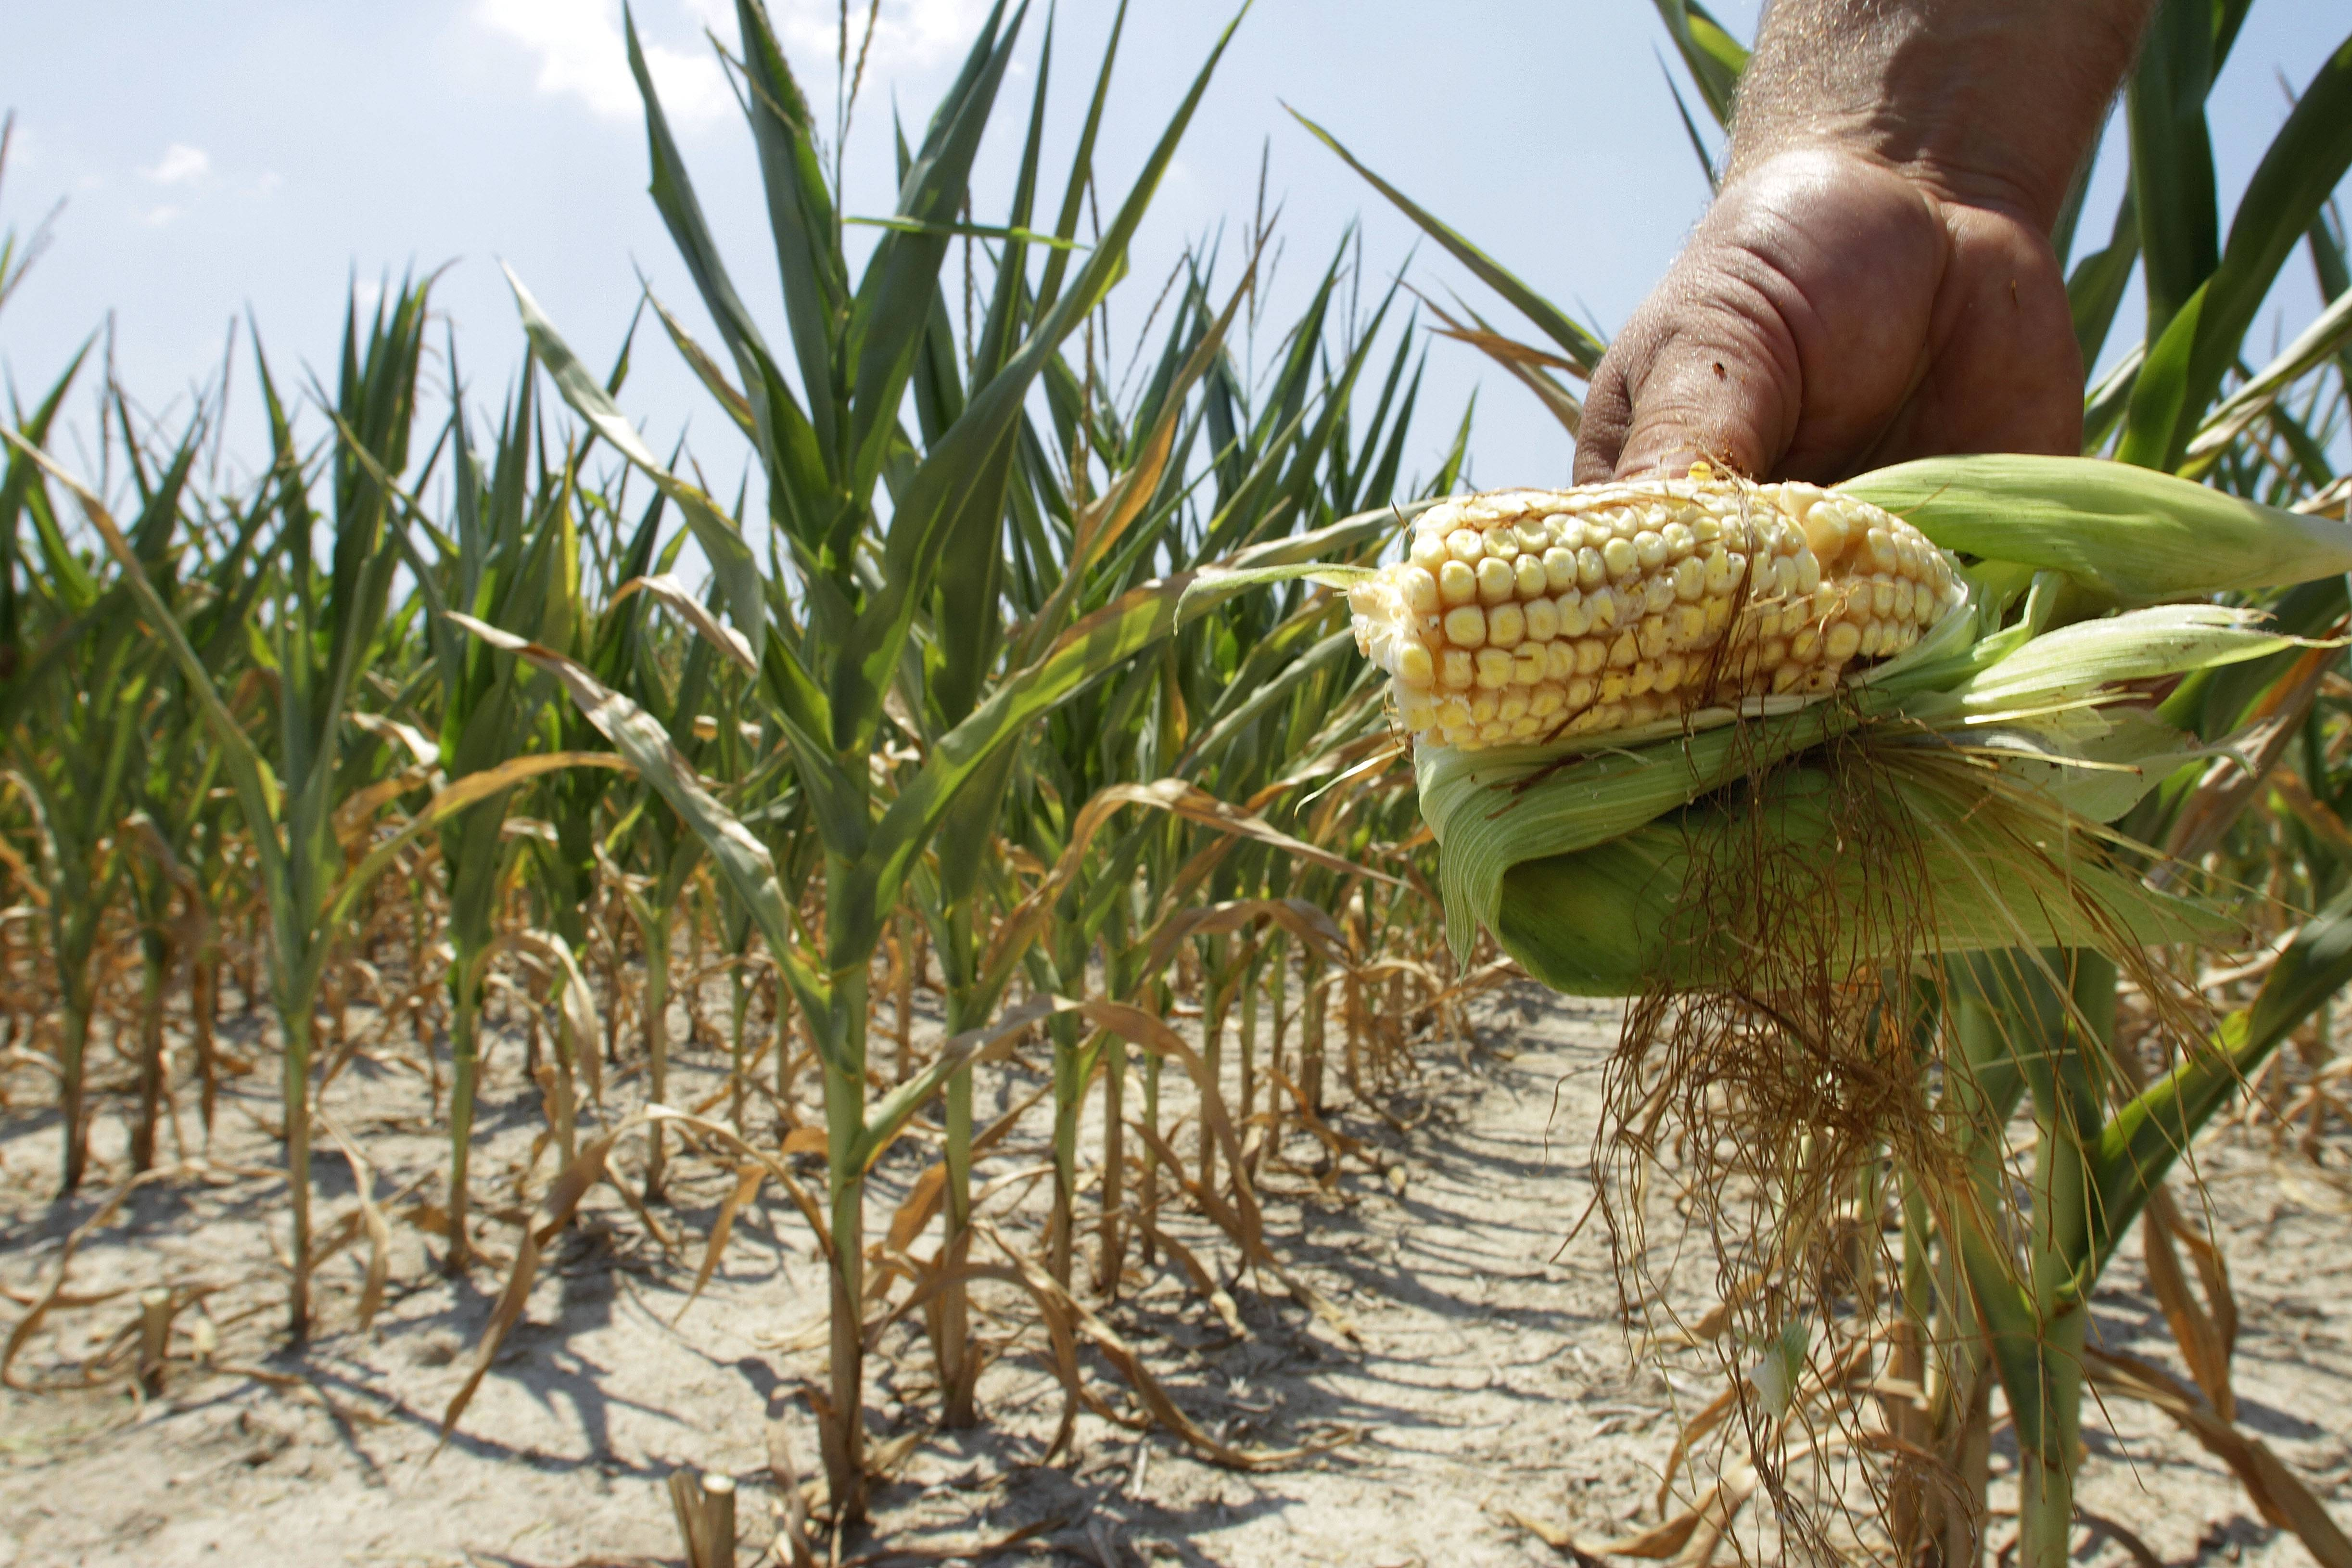 In this July 11, 2012 file photo, Steve Niedbalski shows his drought and heat stricken corn while chopping it down for feed in Nashville, Ill. Higher temperatures will reduce Midwest crop yields by 19 percent by midcentury and by 63 percent by the end of the century, according to a report backed by a trio of men with vast business experience that was released Tuesday, June 24, 2014.